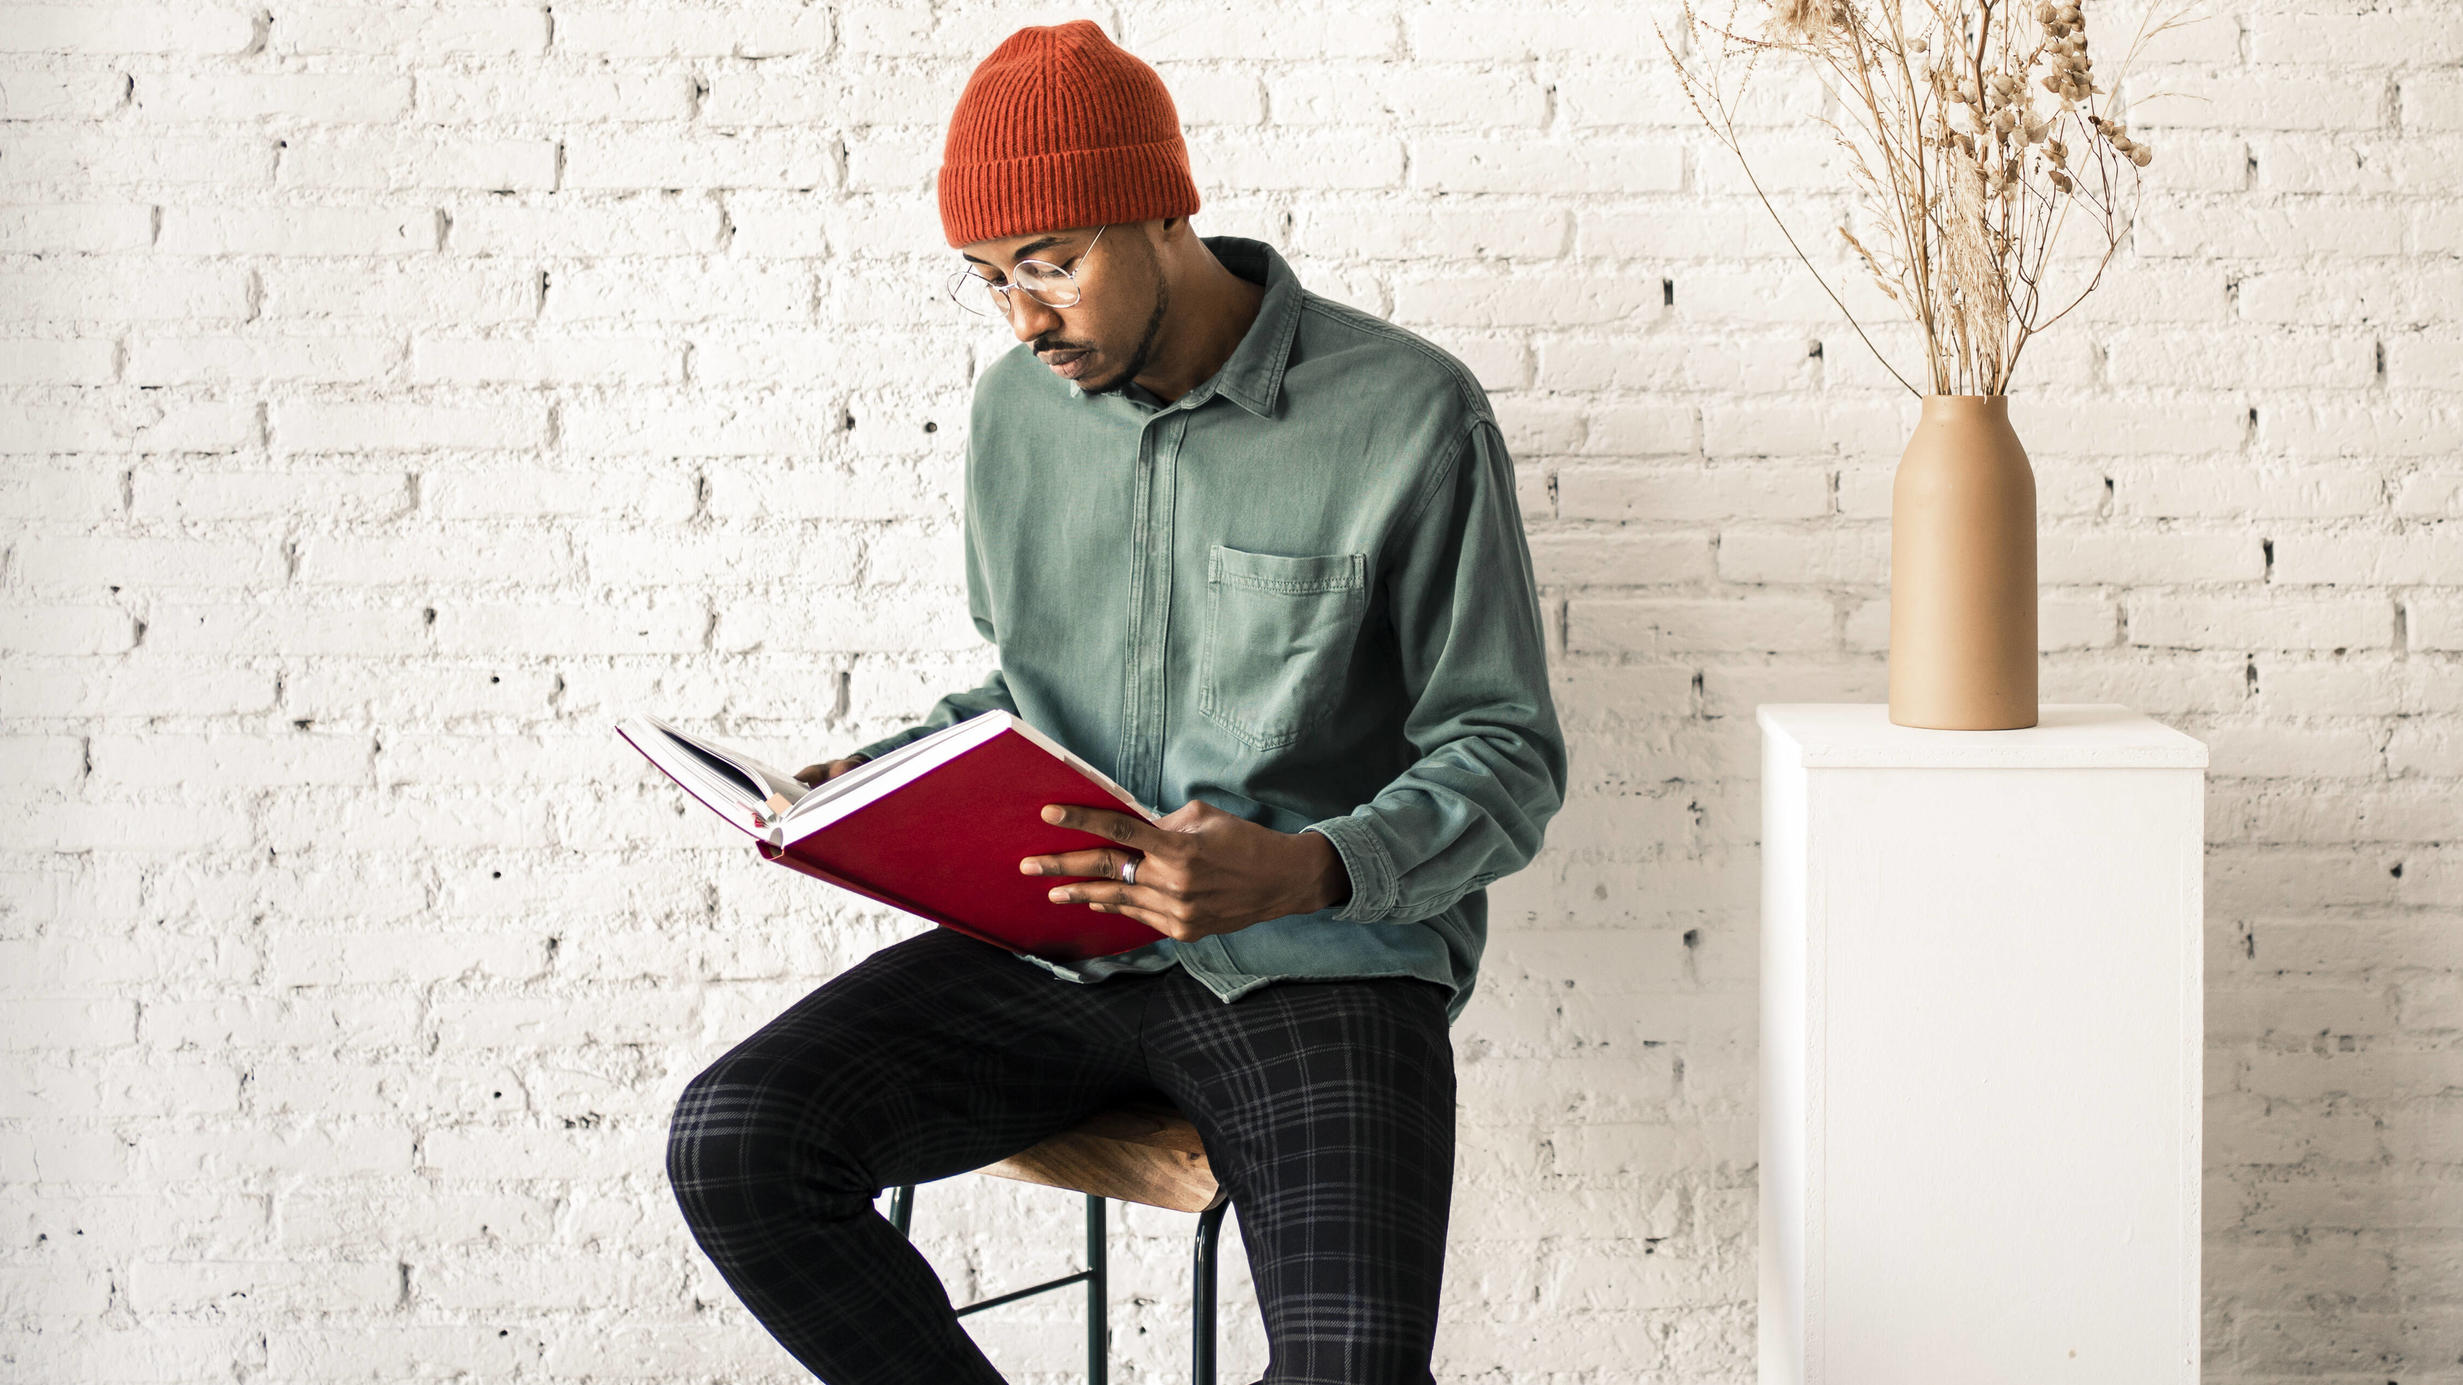 Man in knit hat reading book by dried plant vase against white brick wall model released Symbolfoto property released RCPF00507